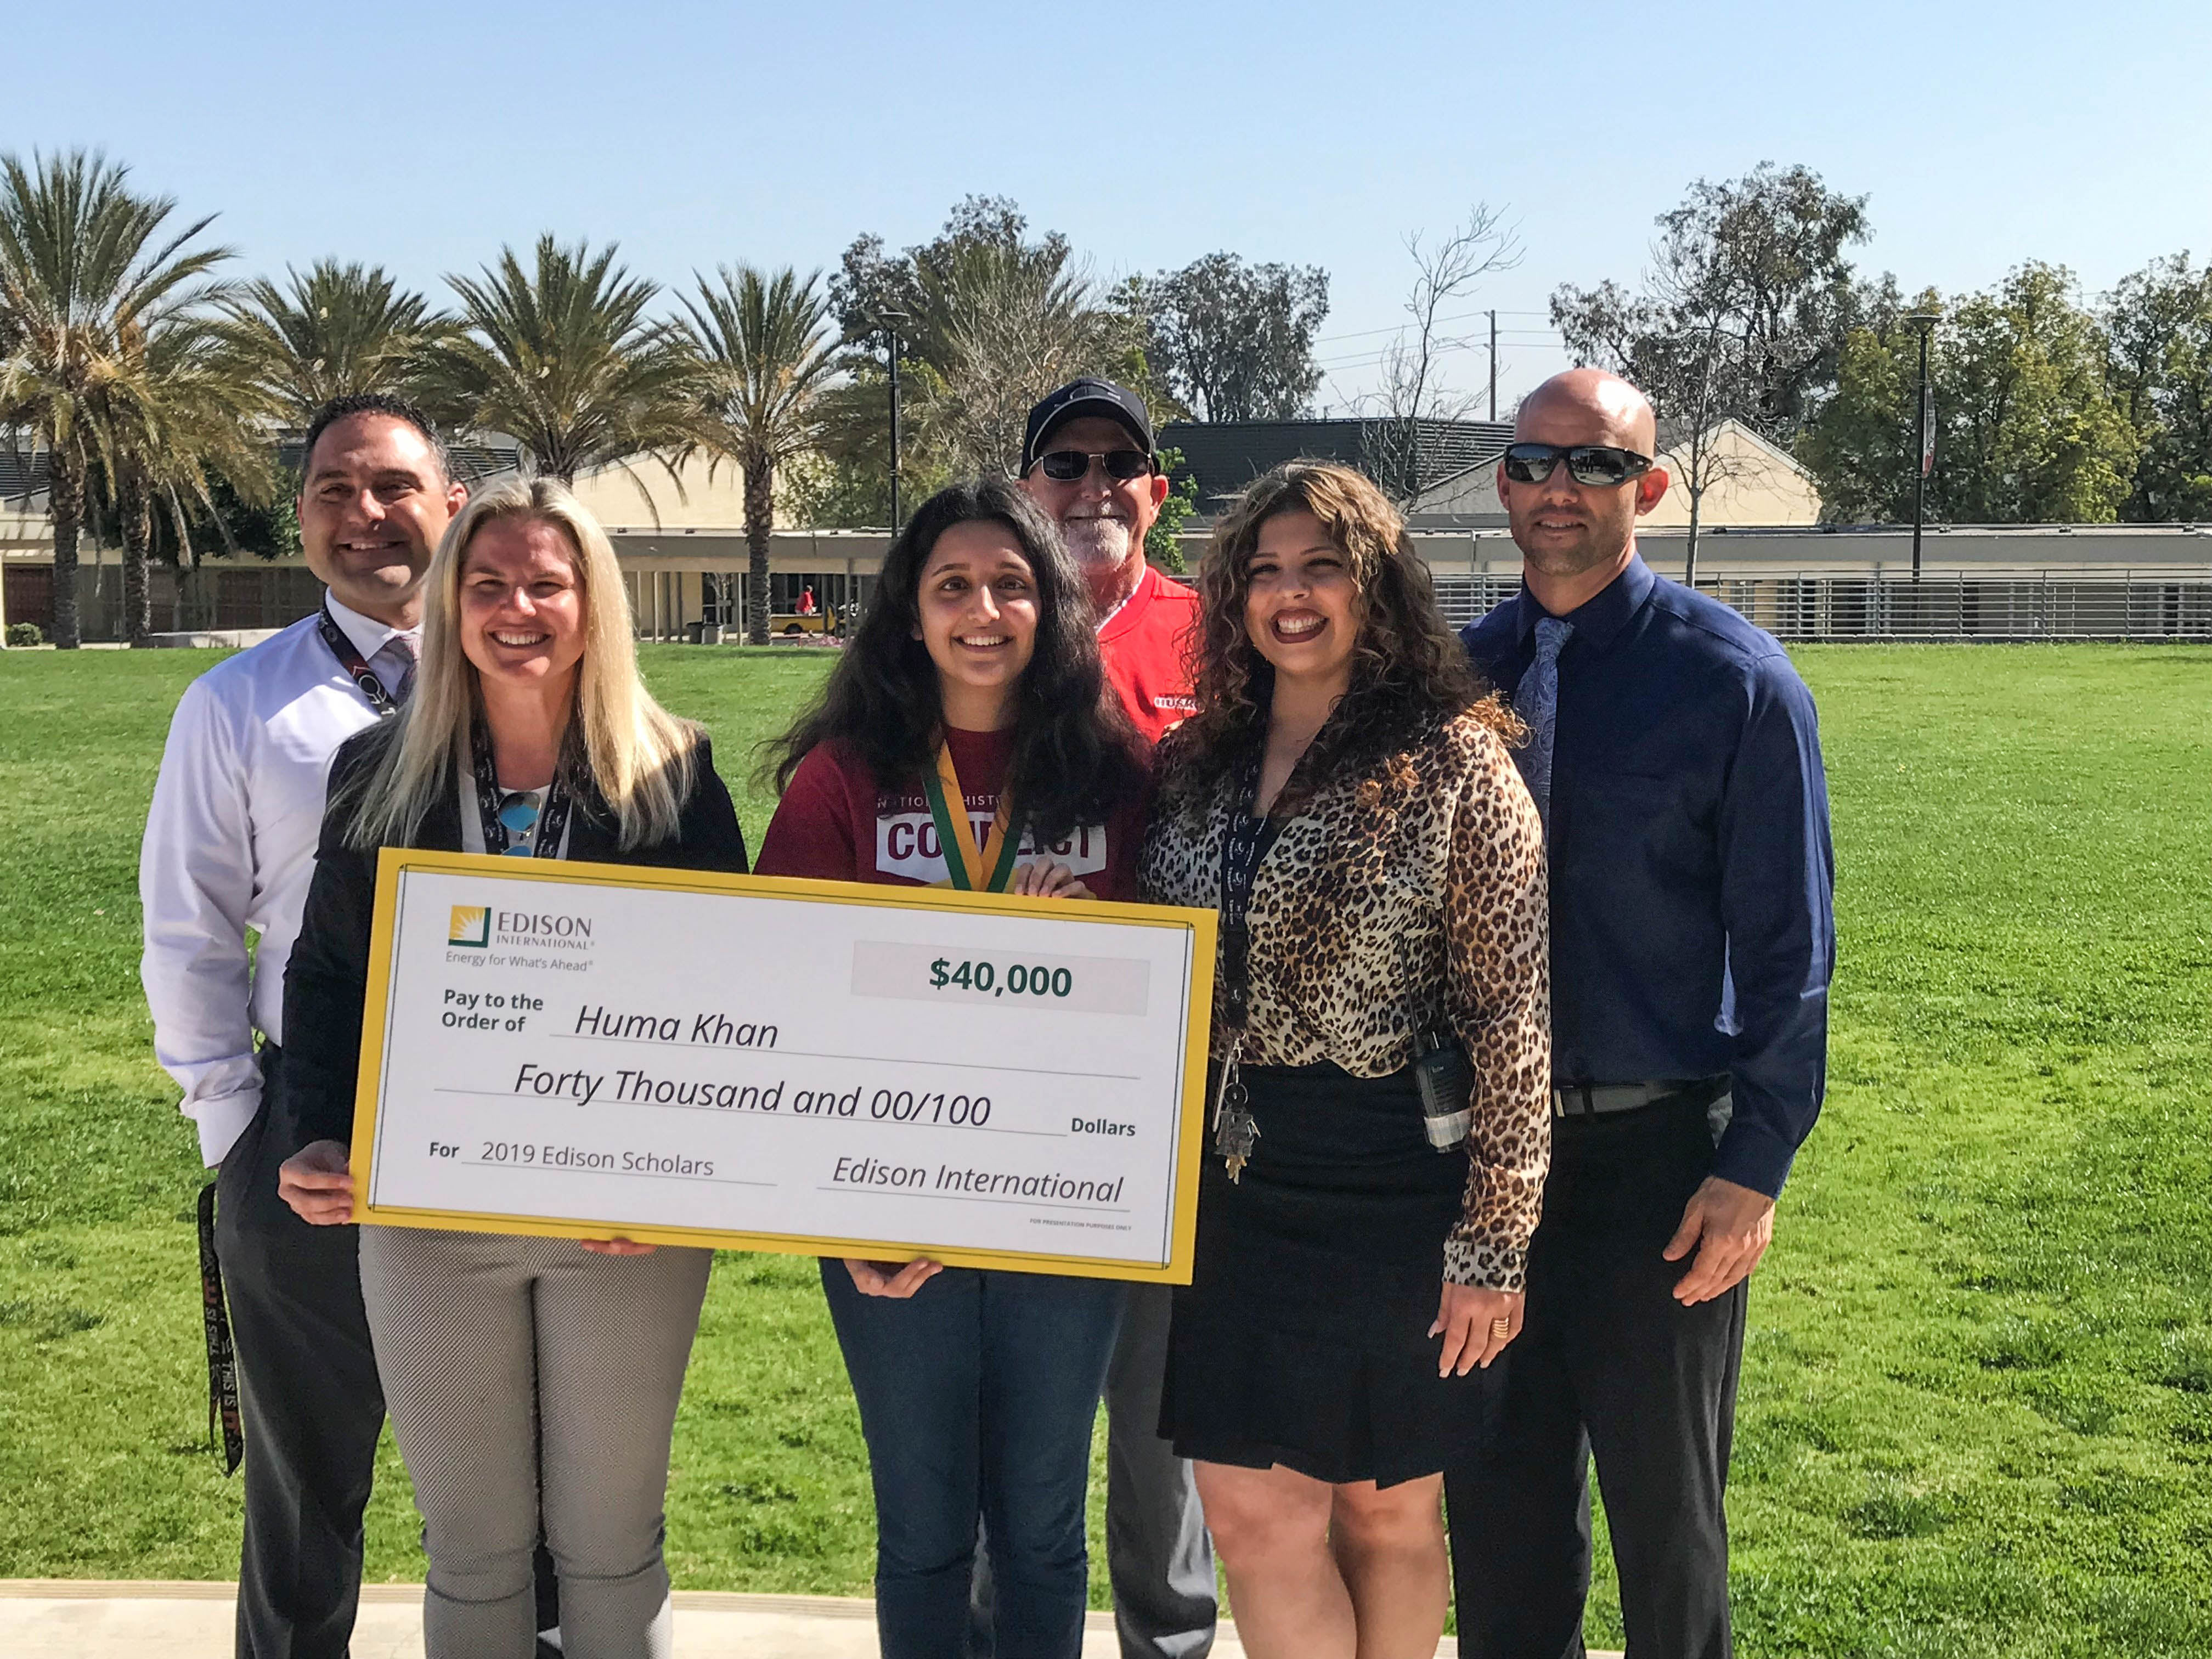 2019 Edison Scholar Huma Khan at Centennial High School